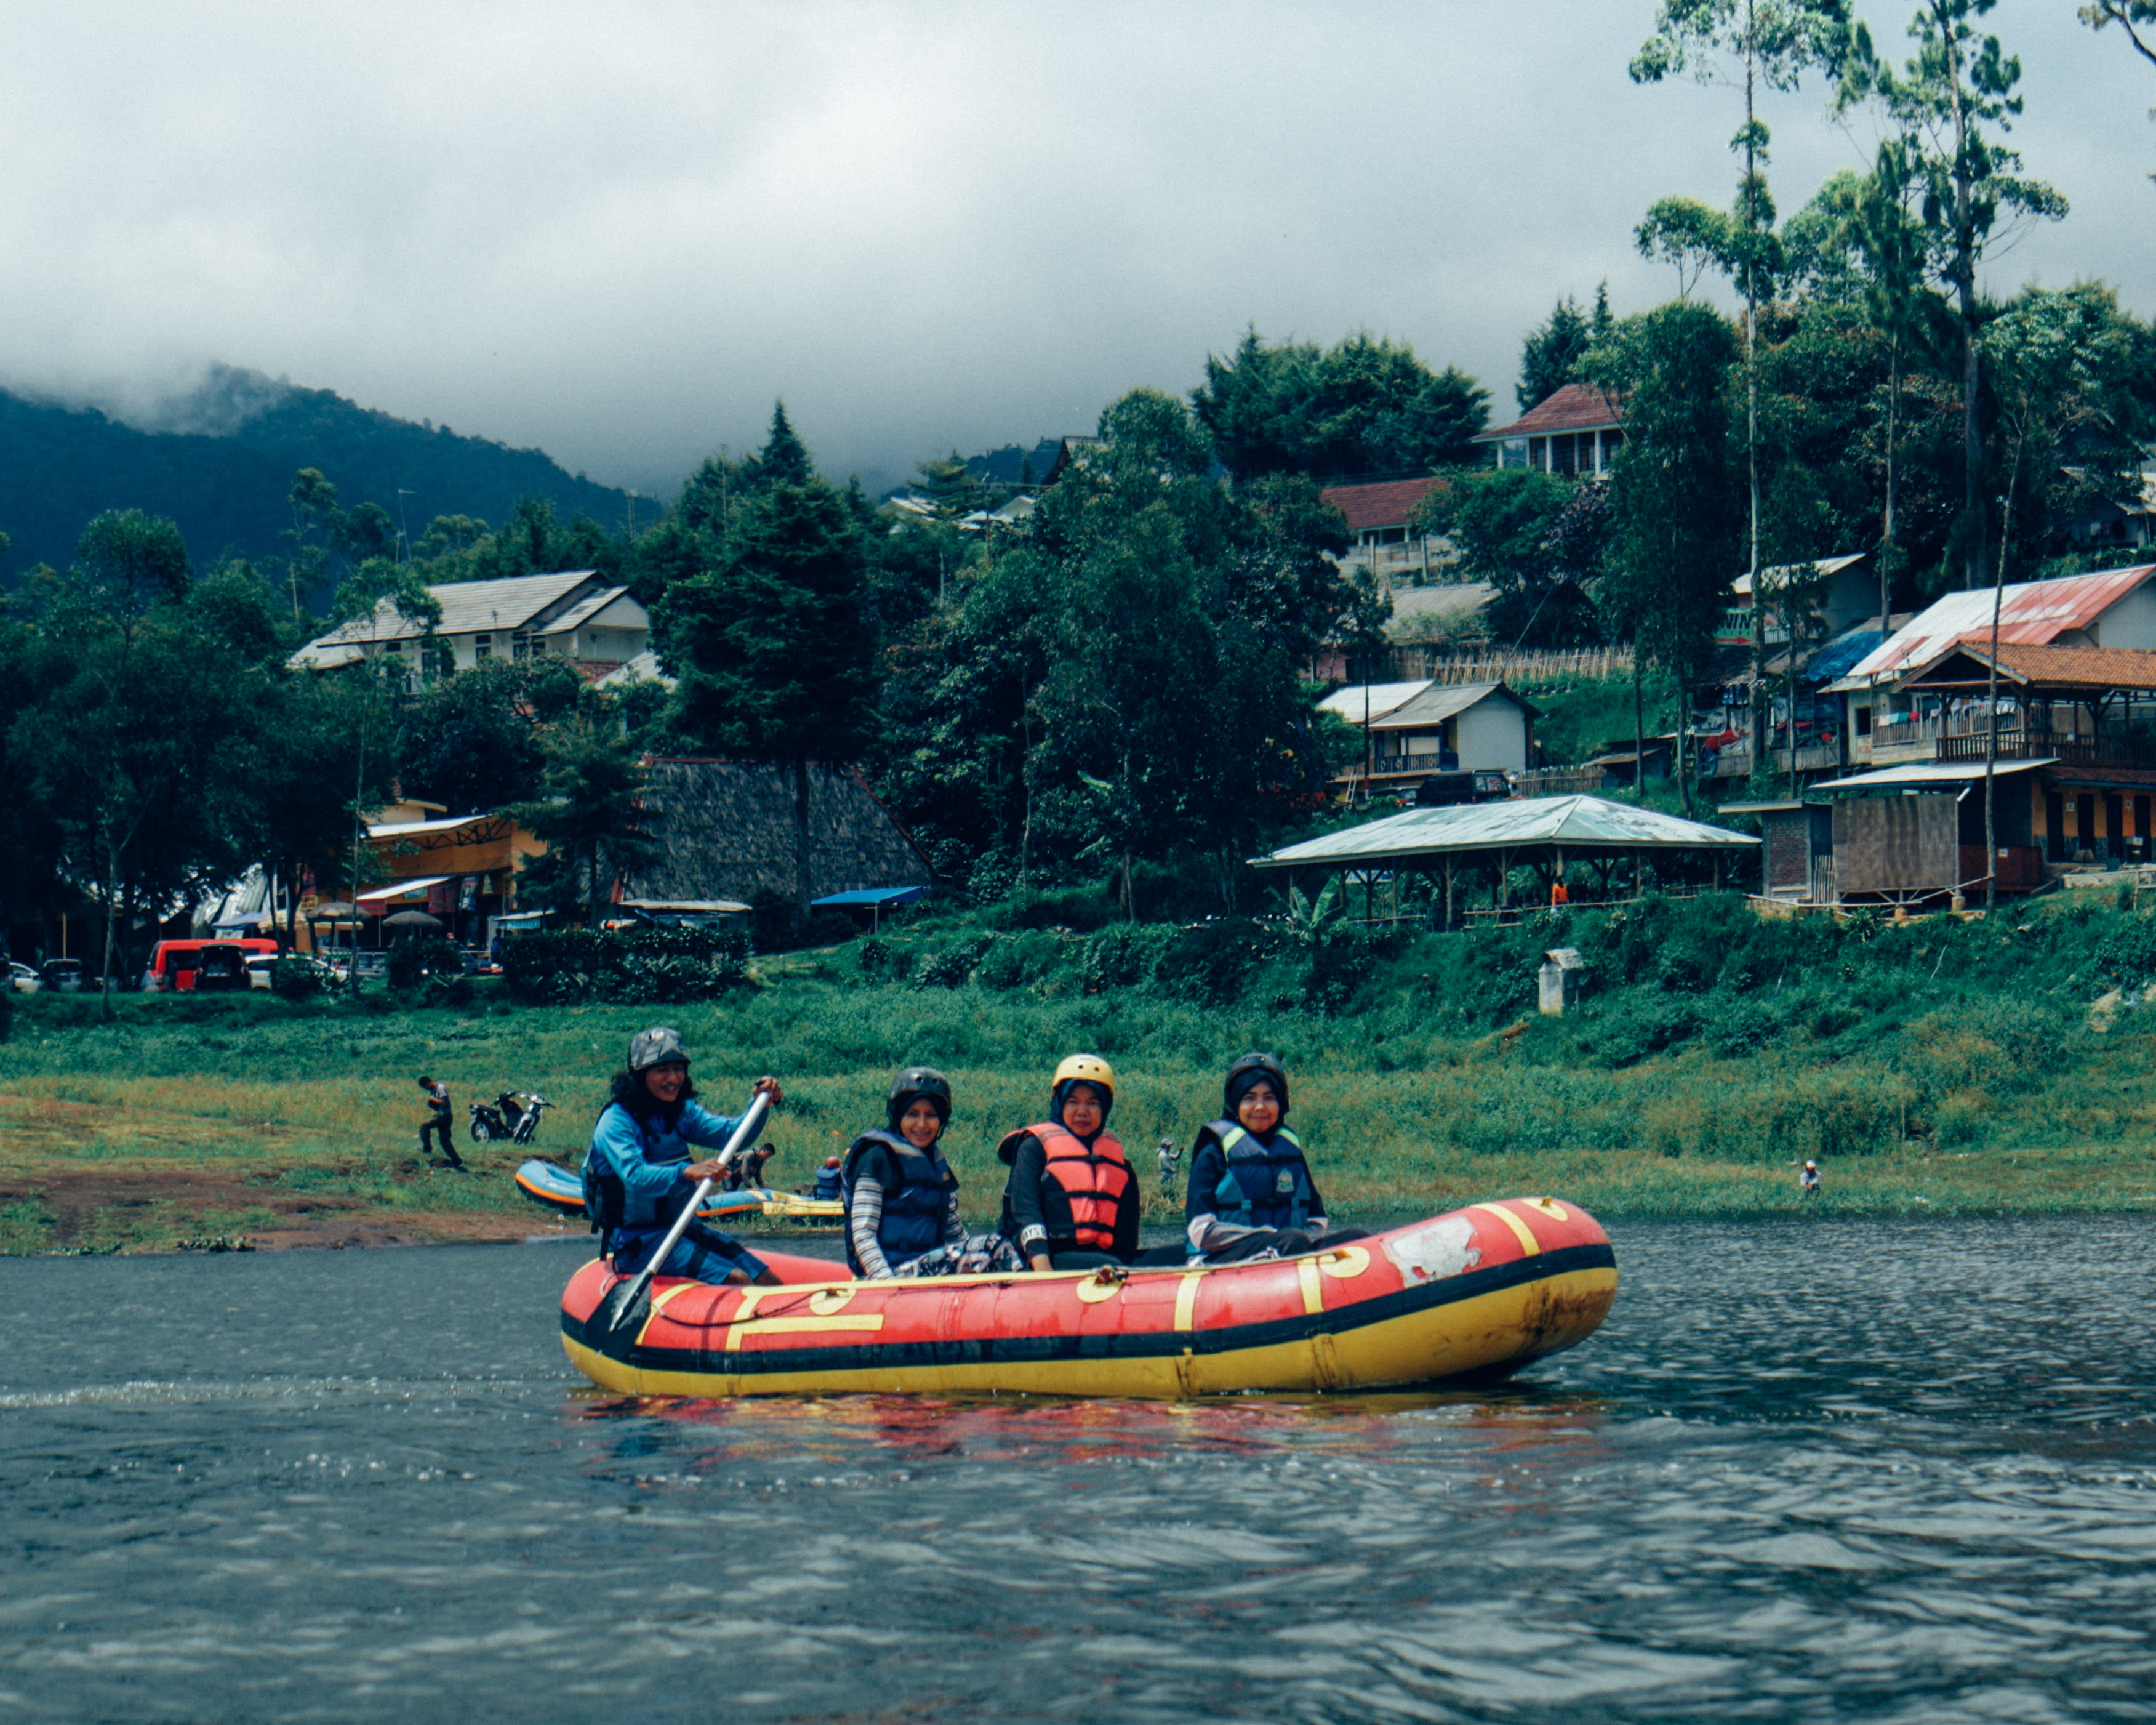 four people riding on inflatable raft boat